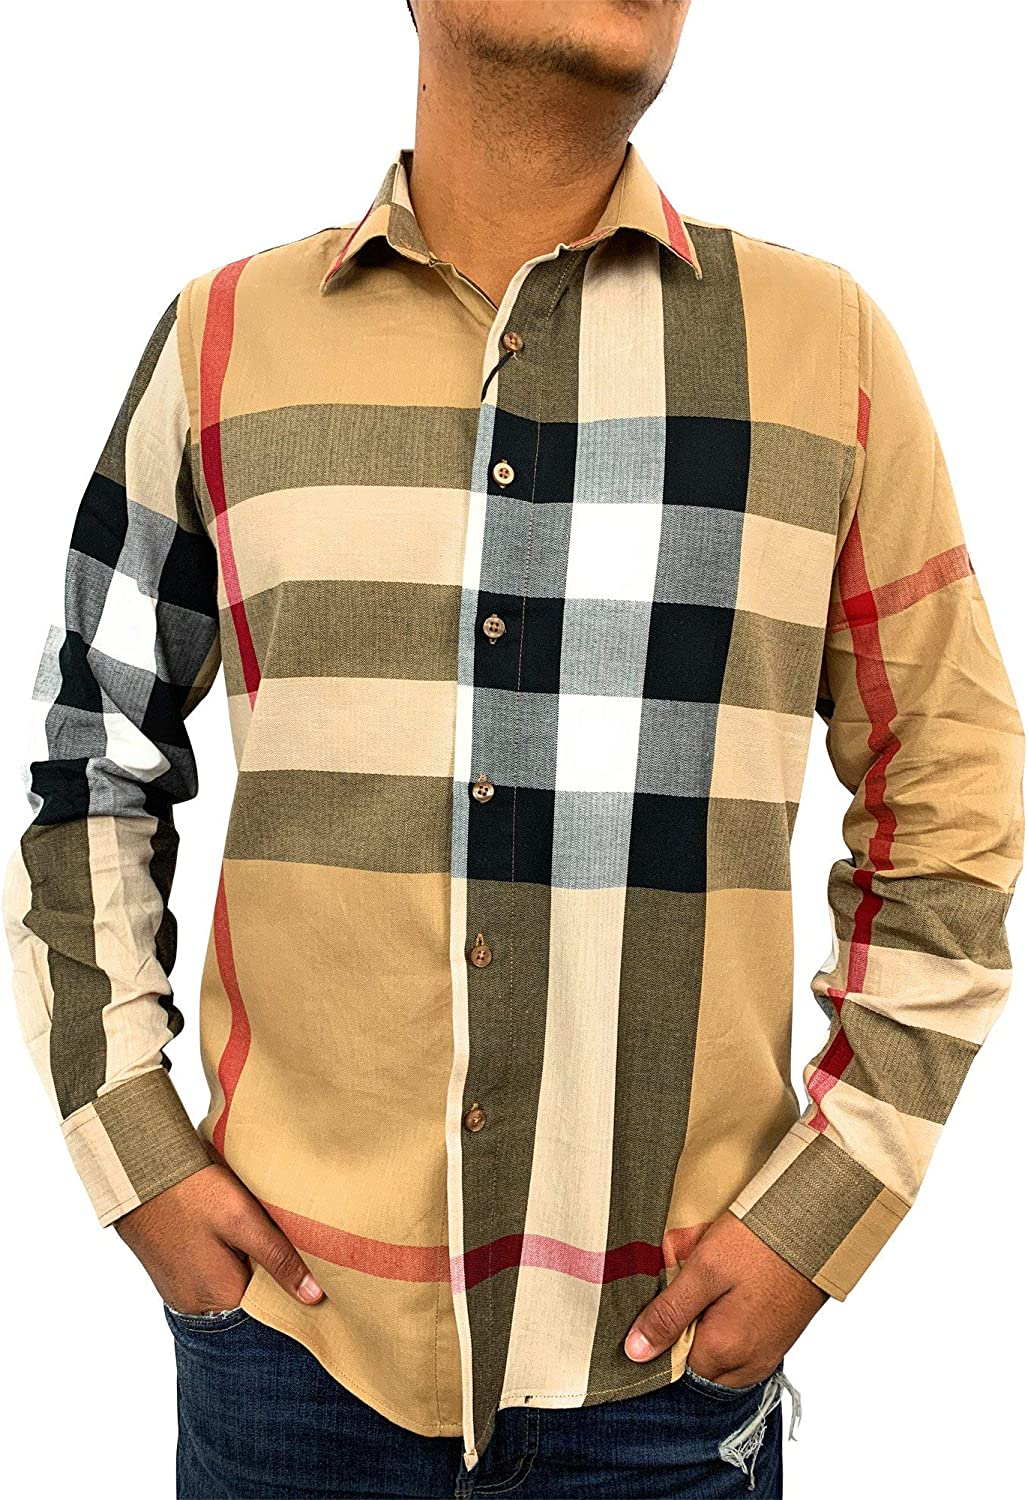 Bellagio Men's Long Sleeve Slim Fit Casual Plaid Dress Shirt Beige